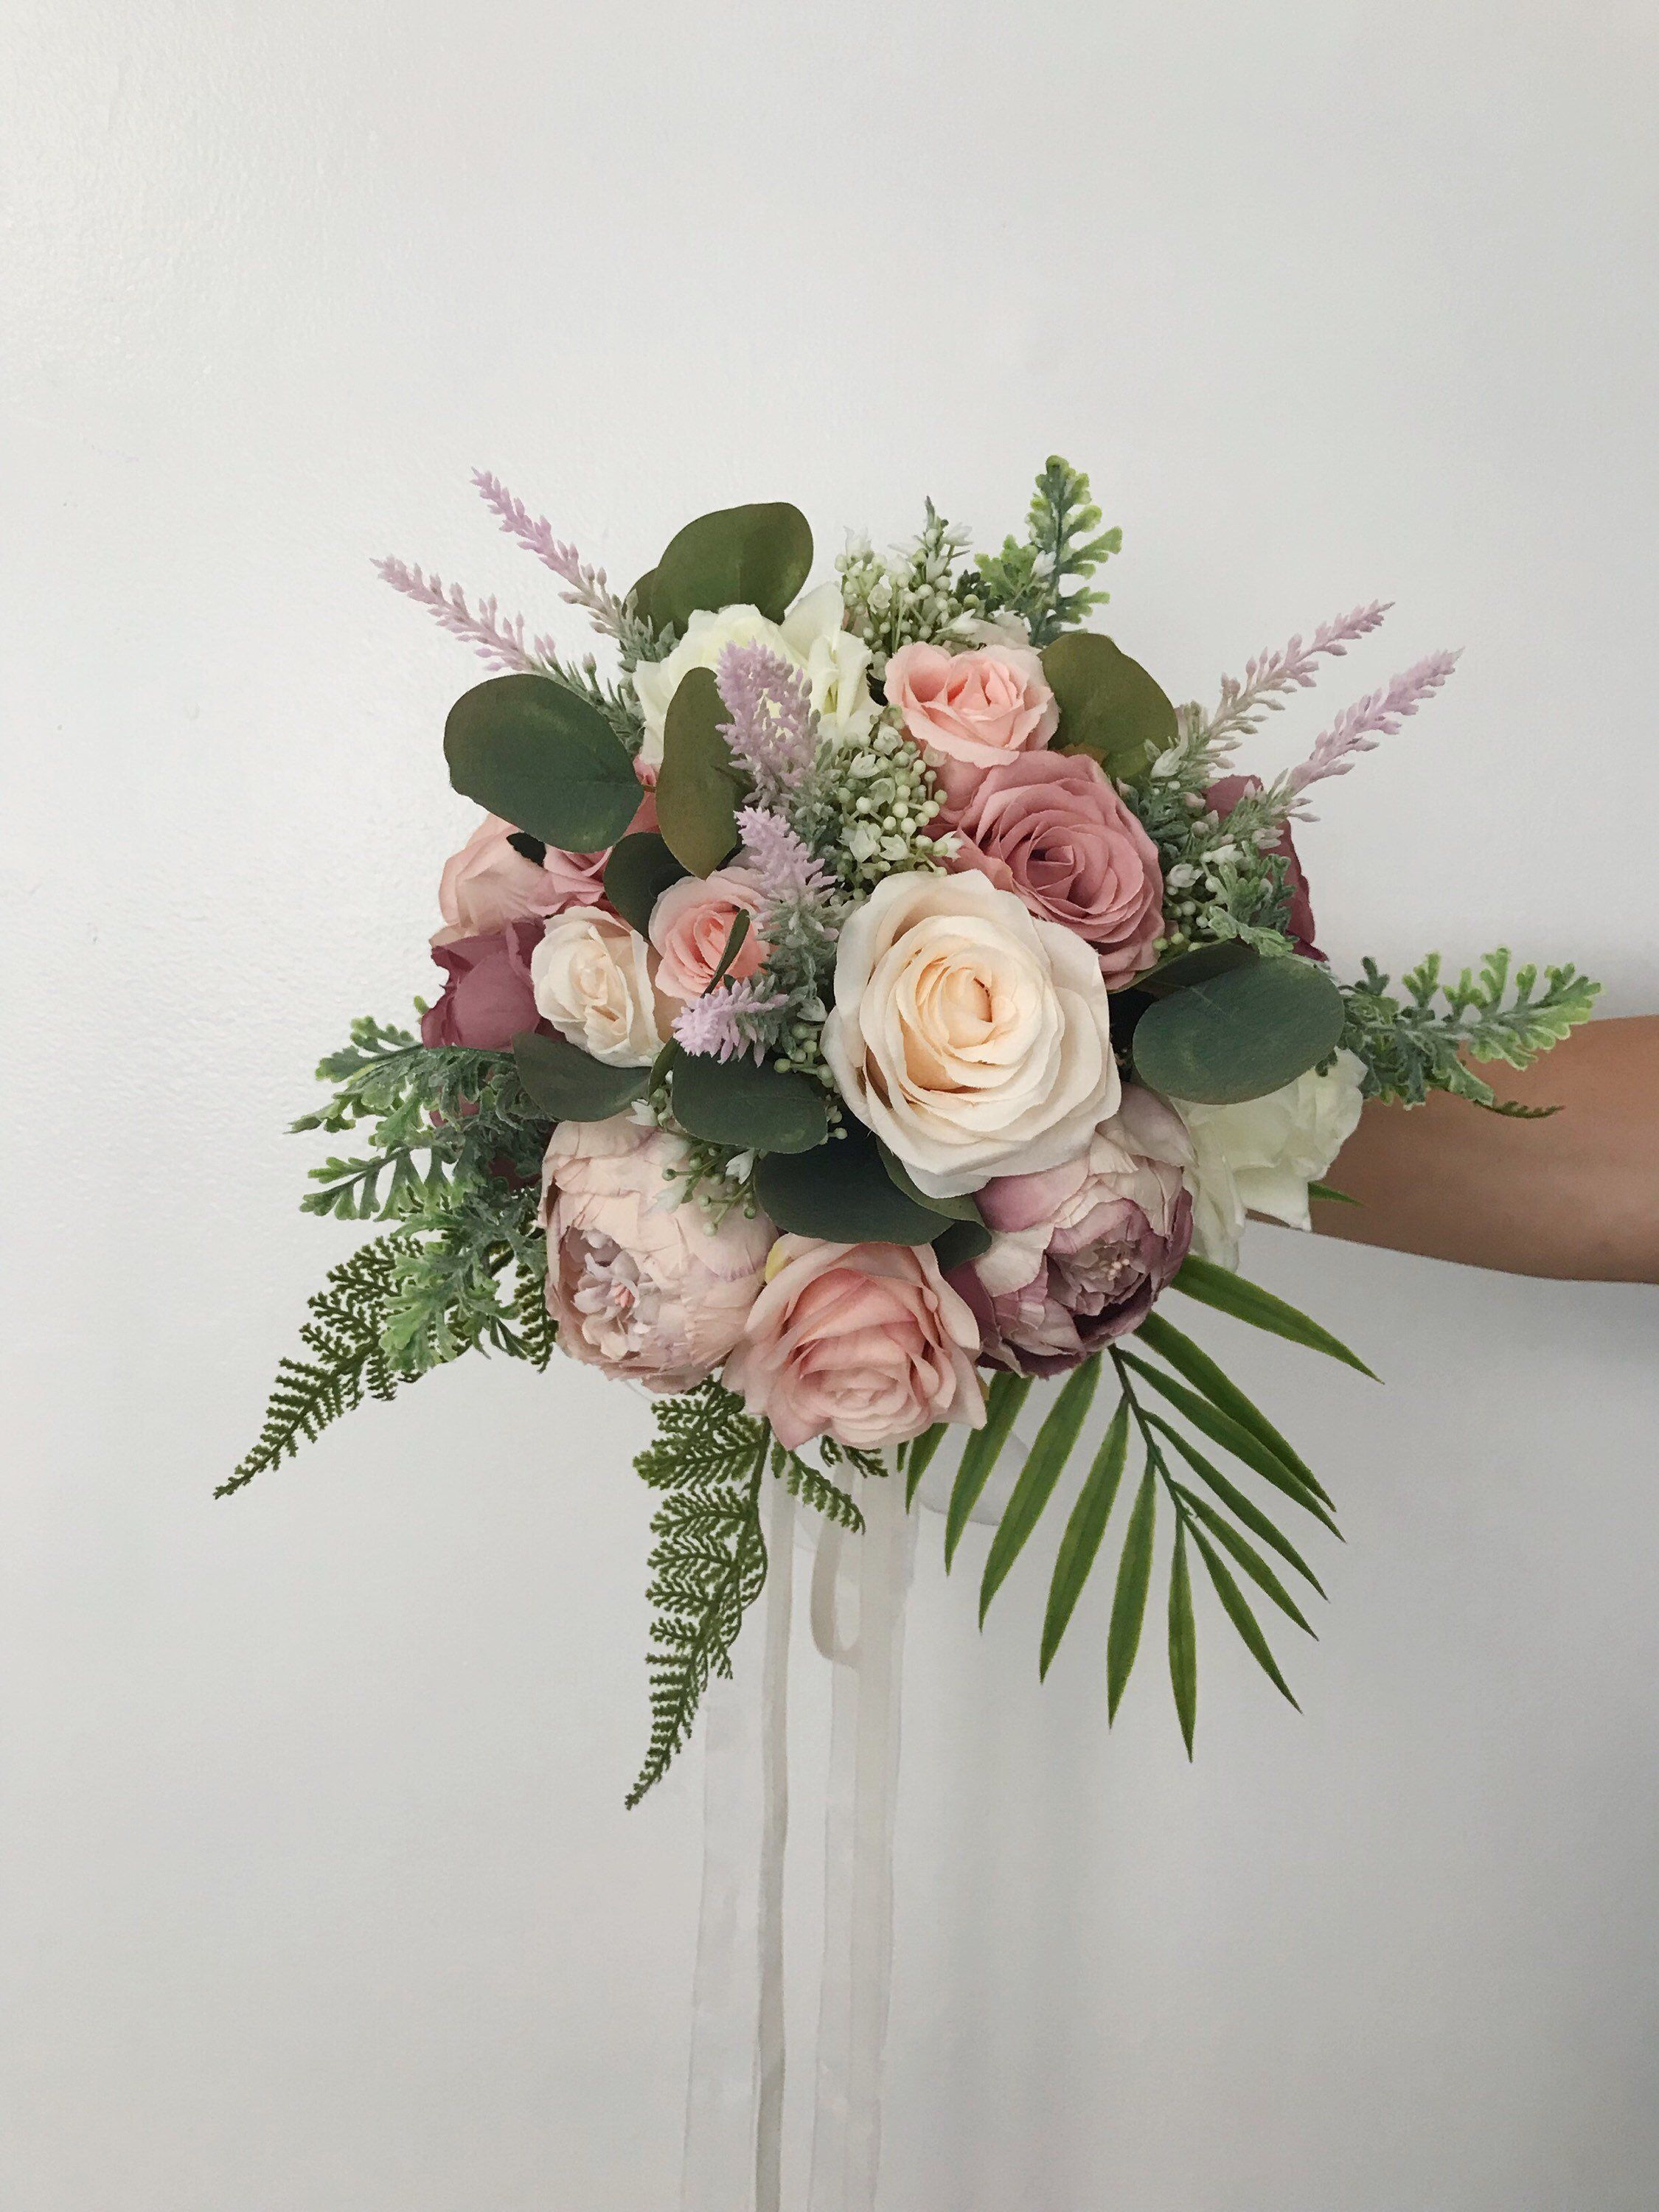 Wedding Bouquets, Bridal Bouquets, Bridesmaids bouquets, Boho Bouquets, Blush, Dusty Rose, Mauve, Eucalyptus, Ivory, Cream #bridesmaidbouquets